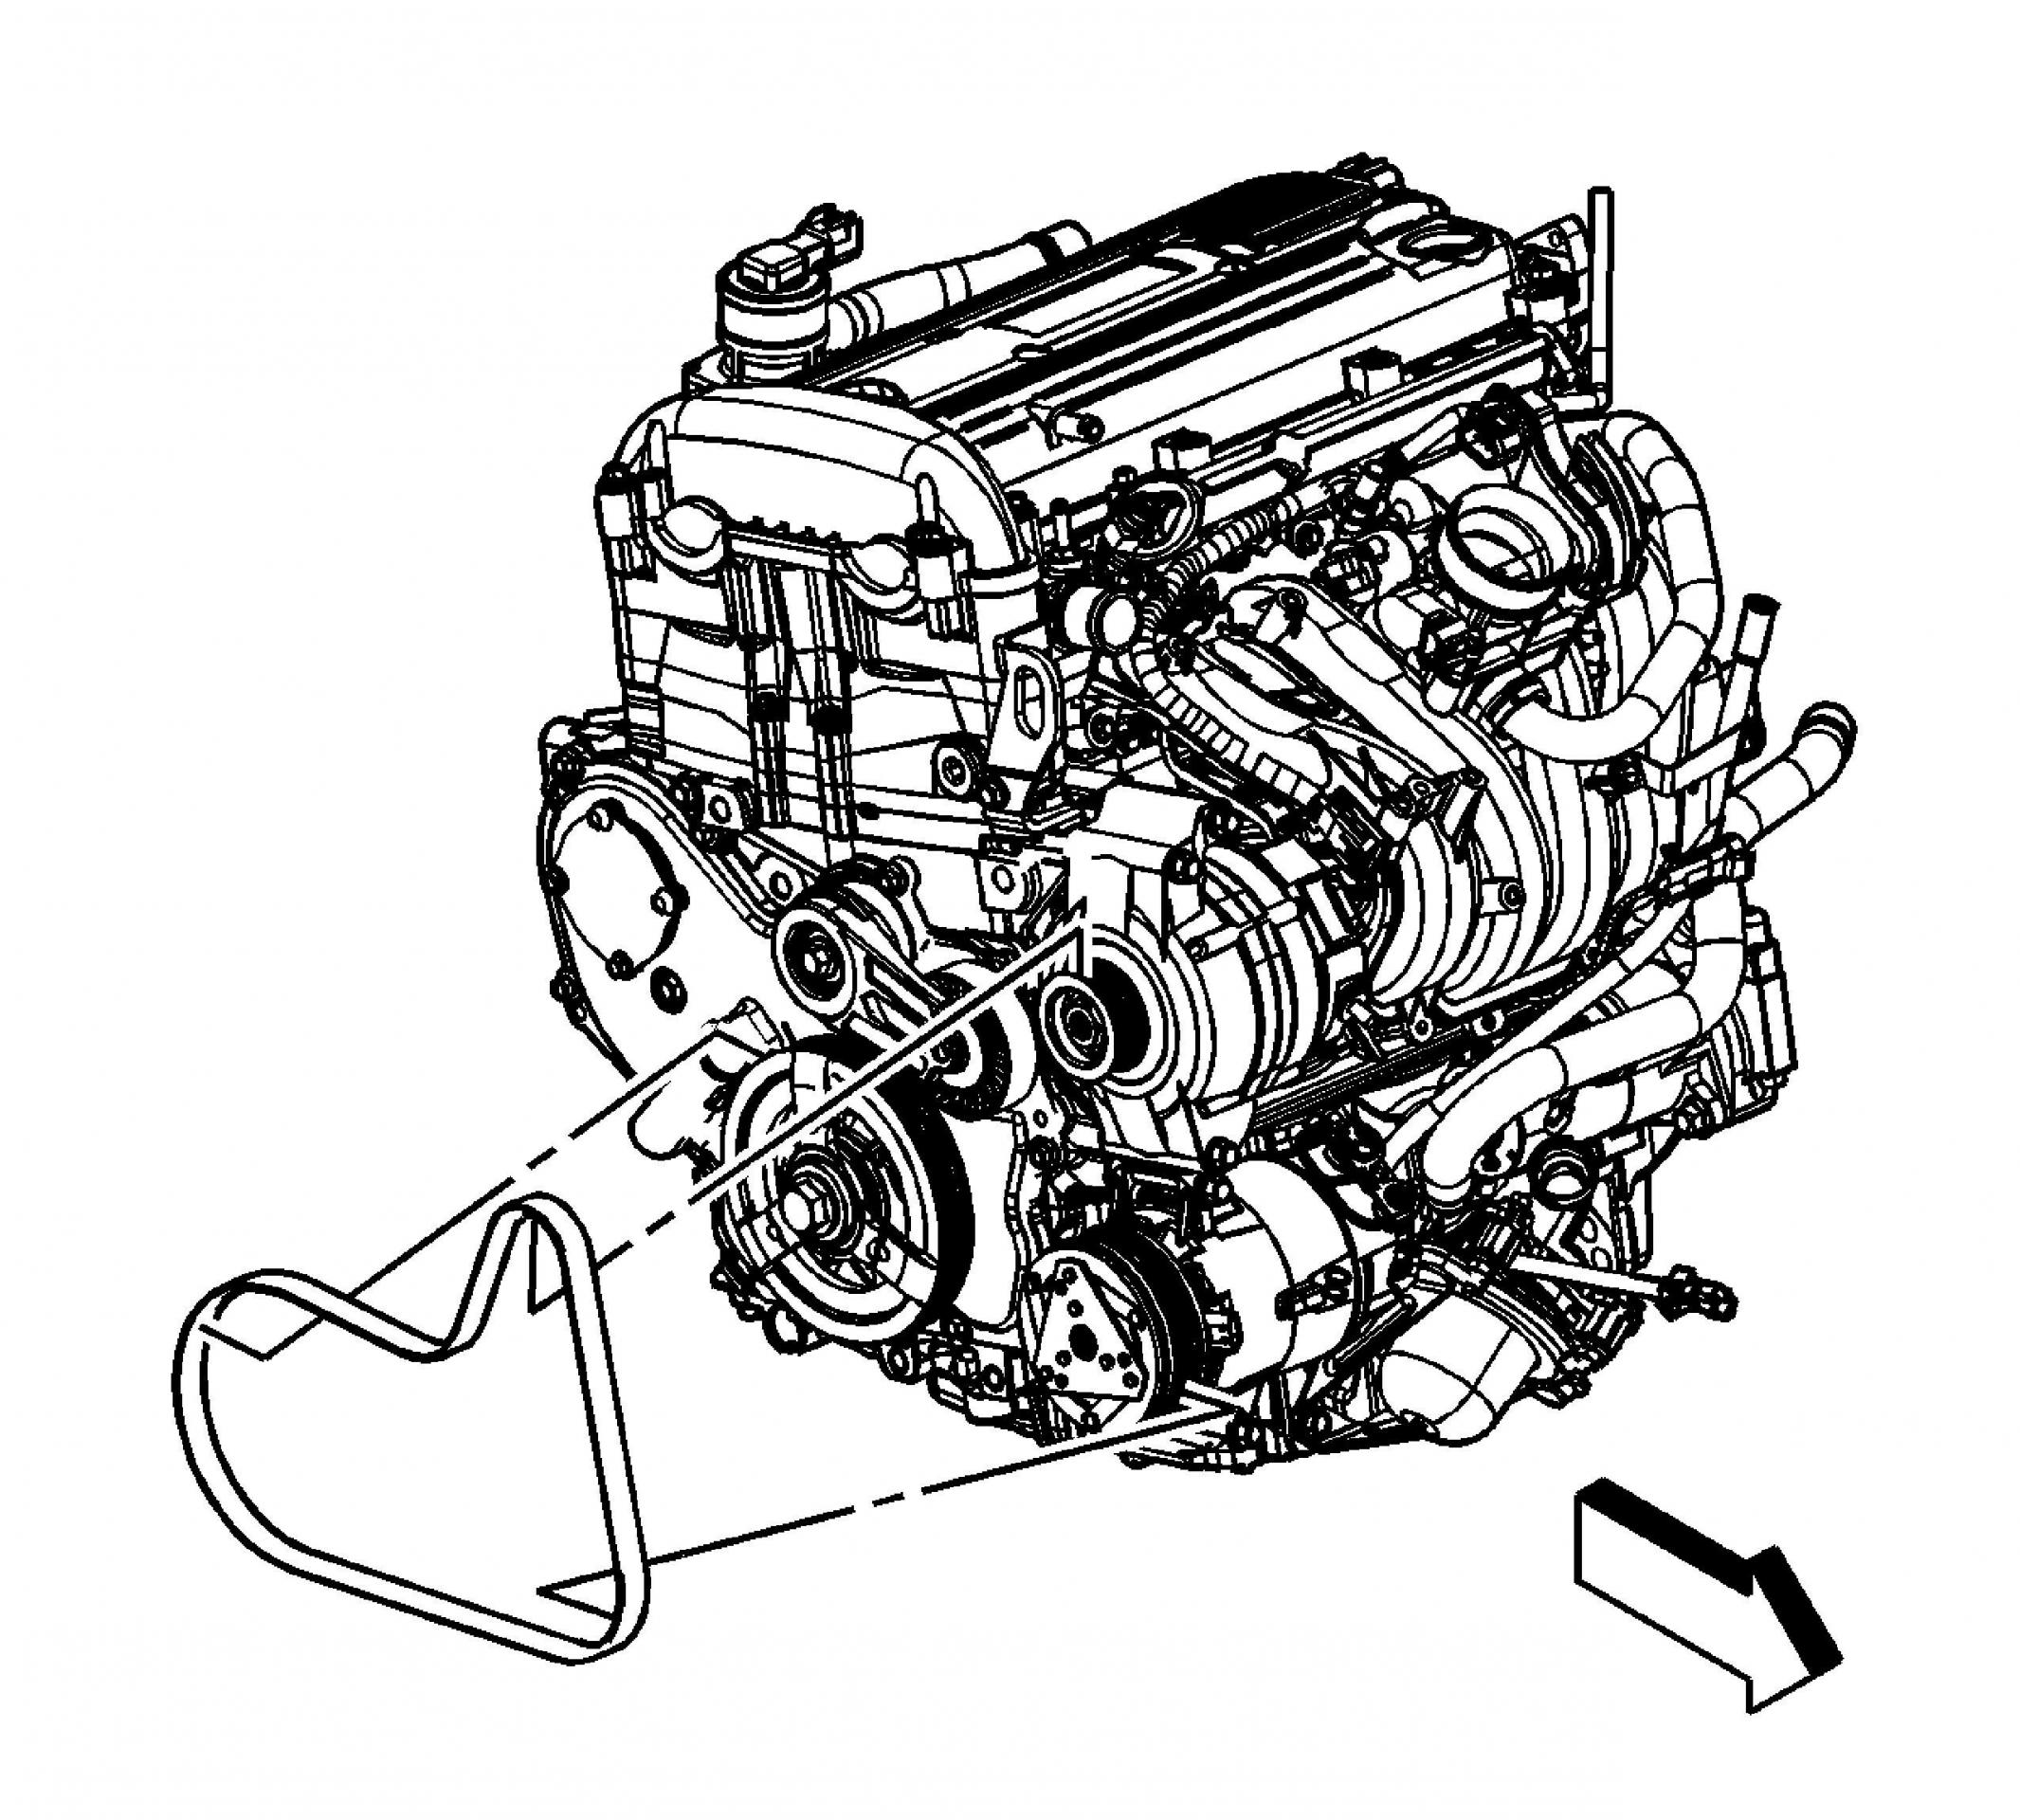 [WRG-3124] 2010 Chevy Equinox Engine Diagram